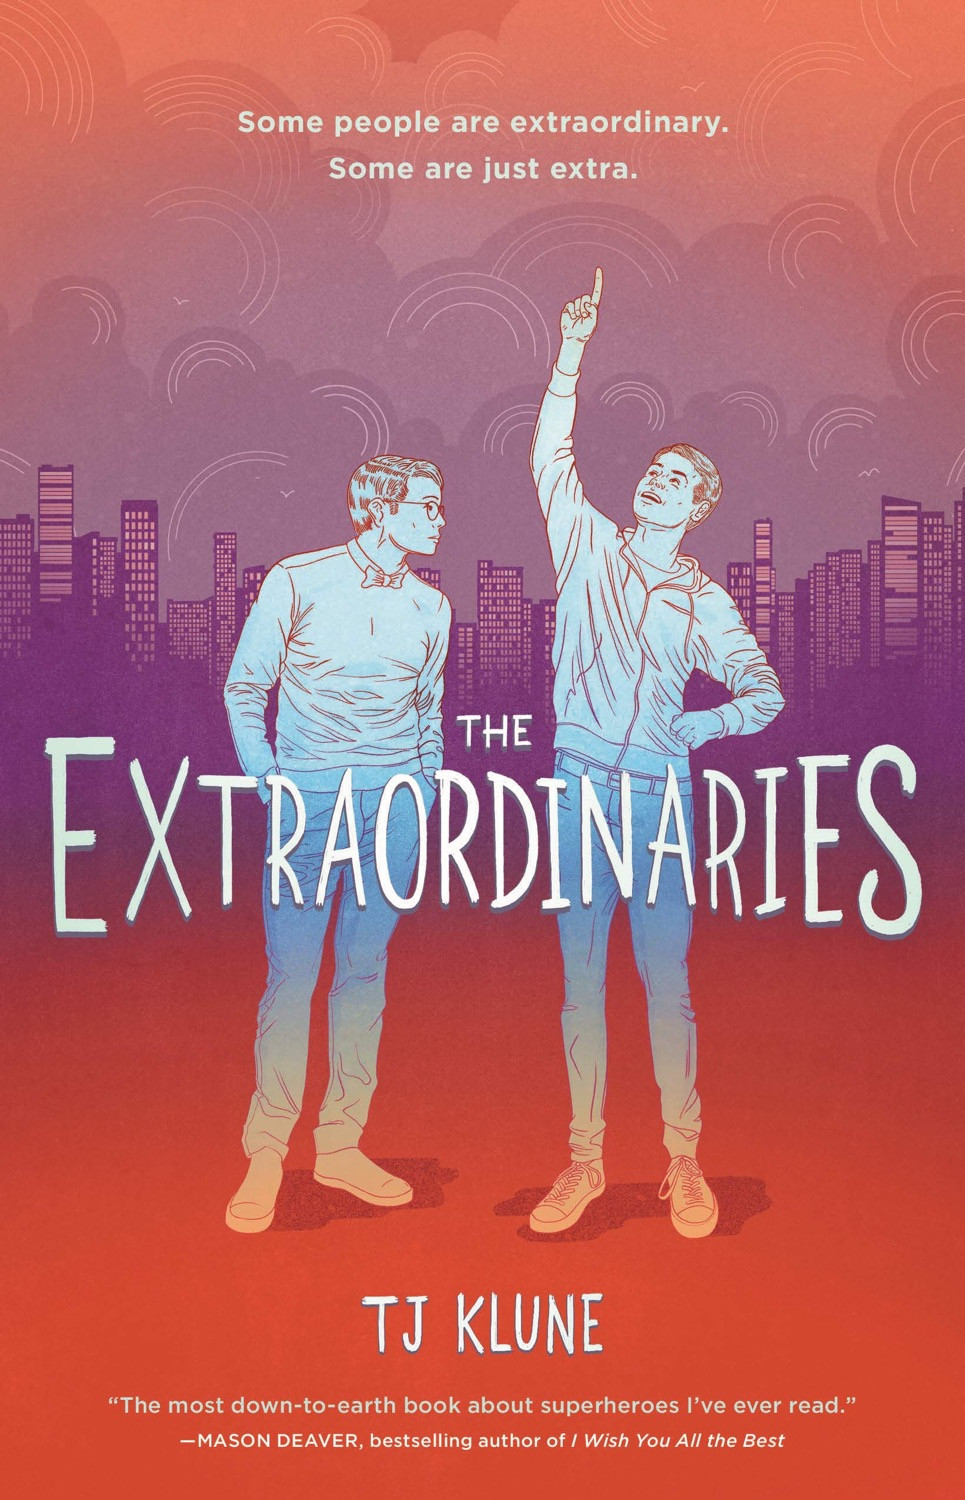 The Extraordinaries by T. J. Klune - YA Books Out in July 2020, curated by Lourdes Montes